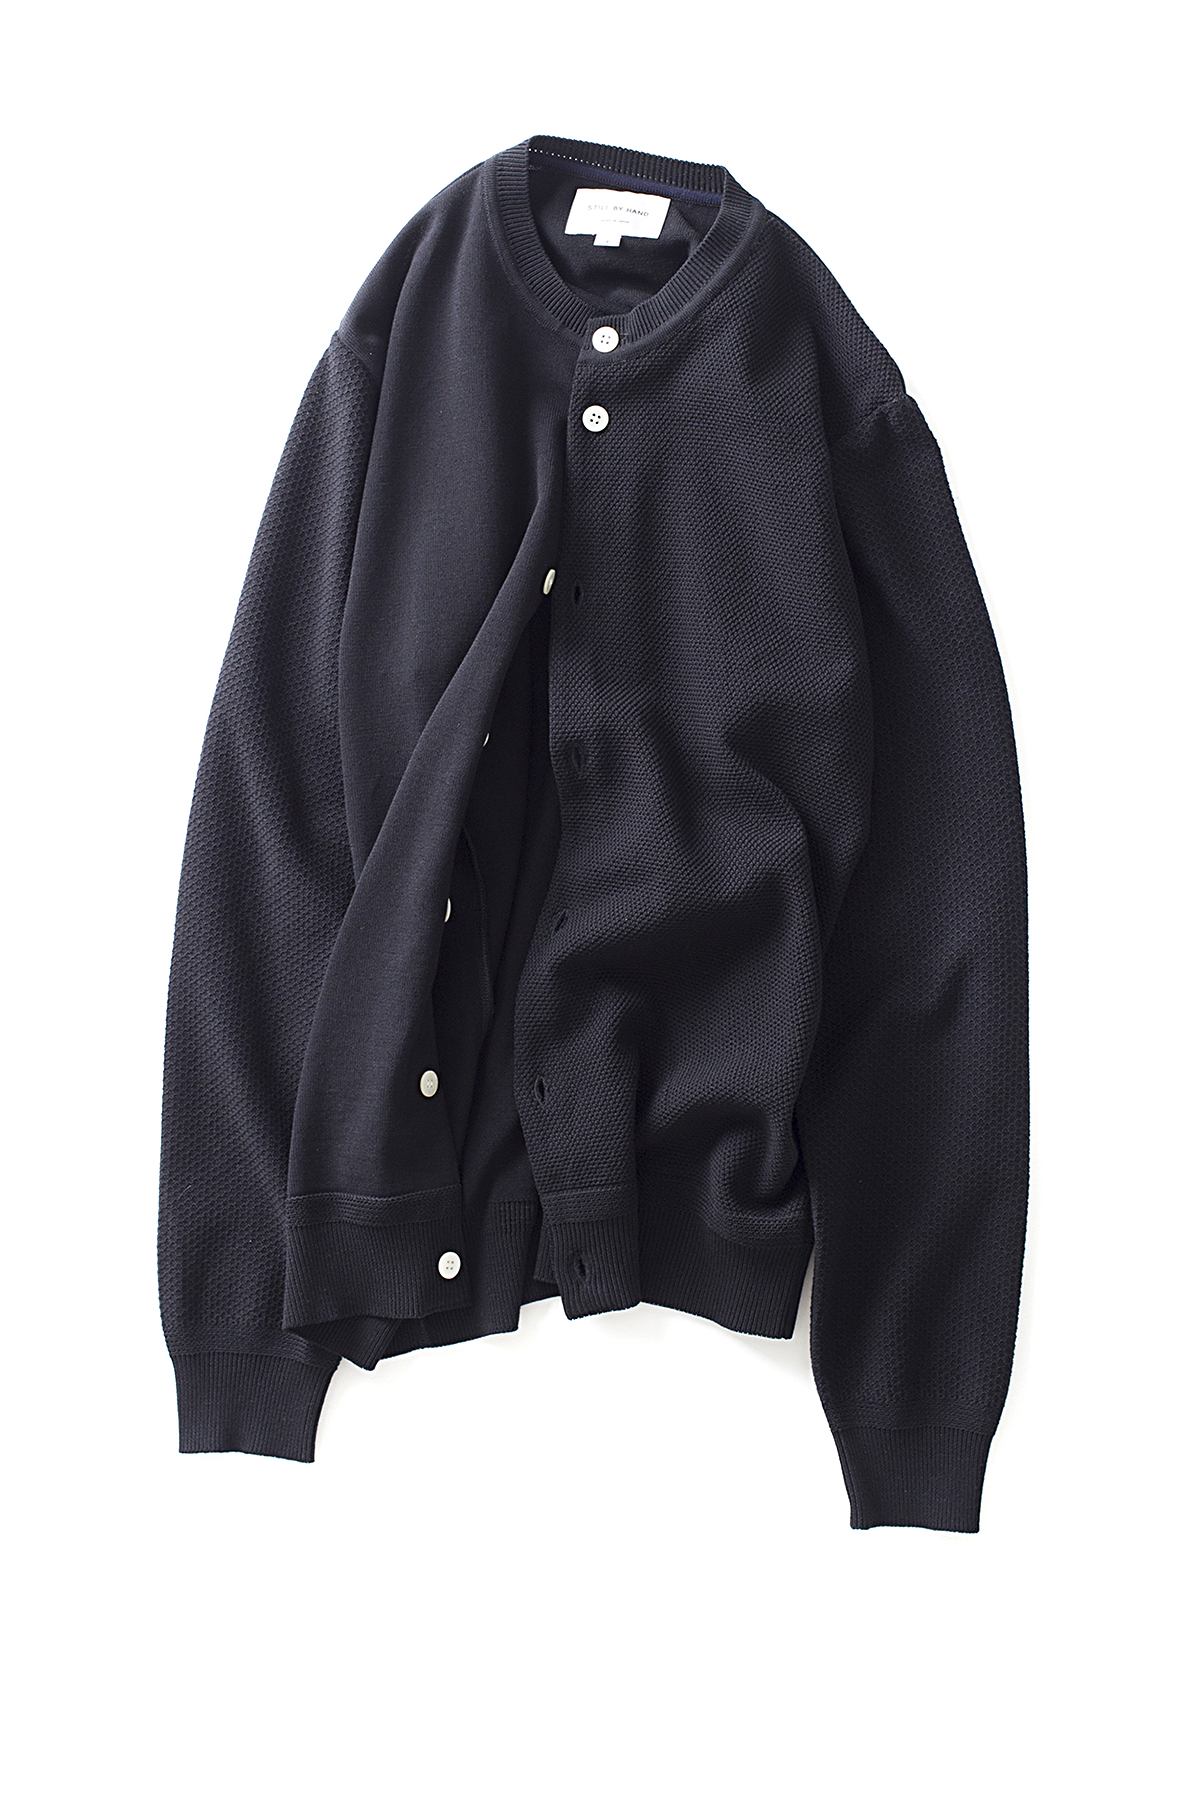 Still By Hand : Crew Neck Cardigan (Black)